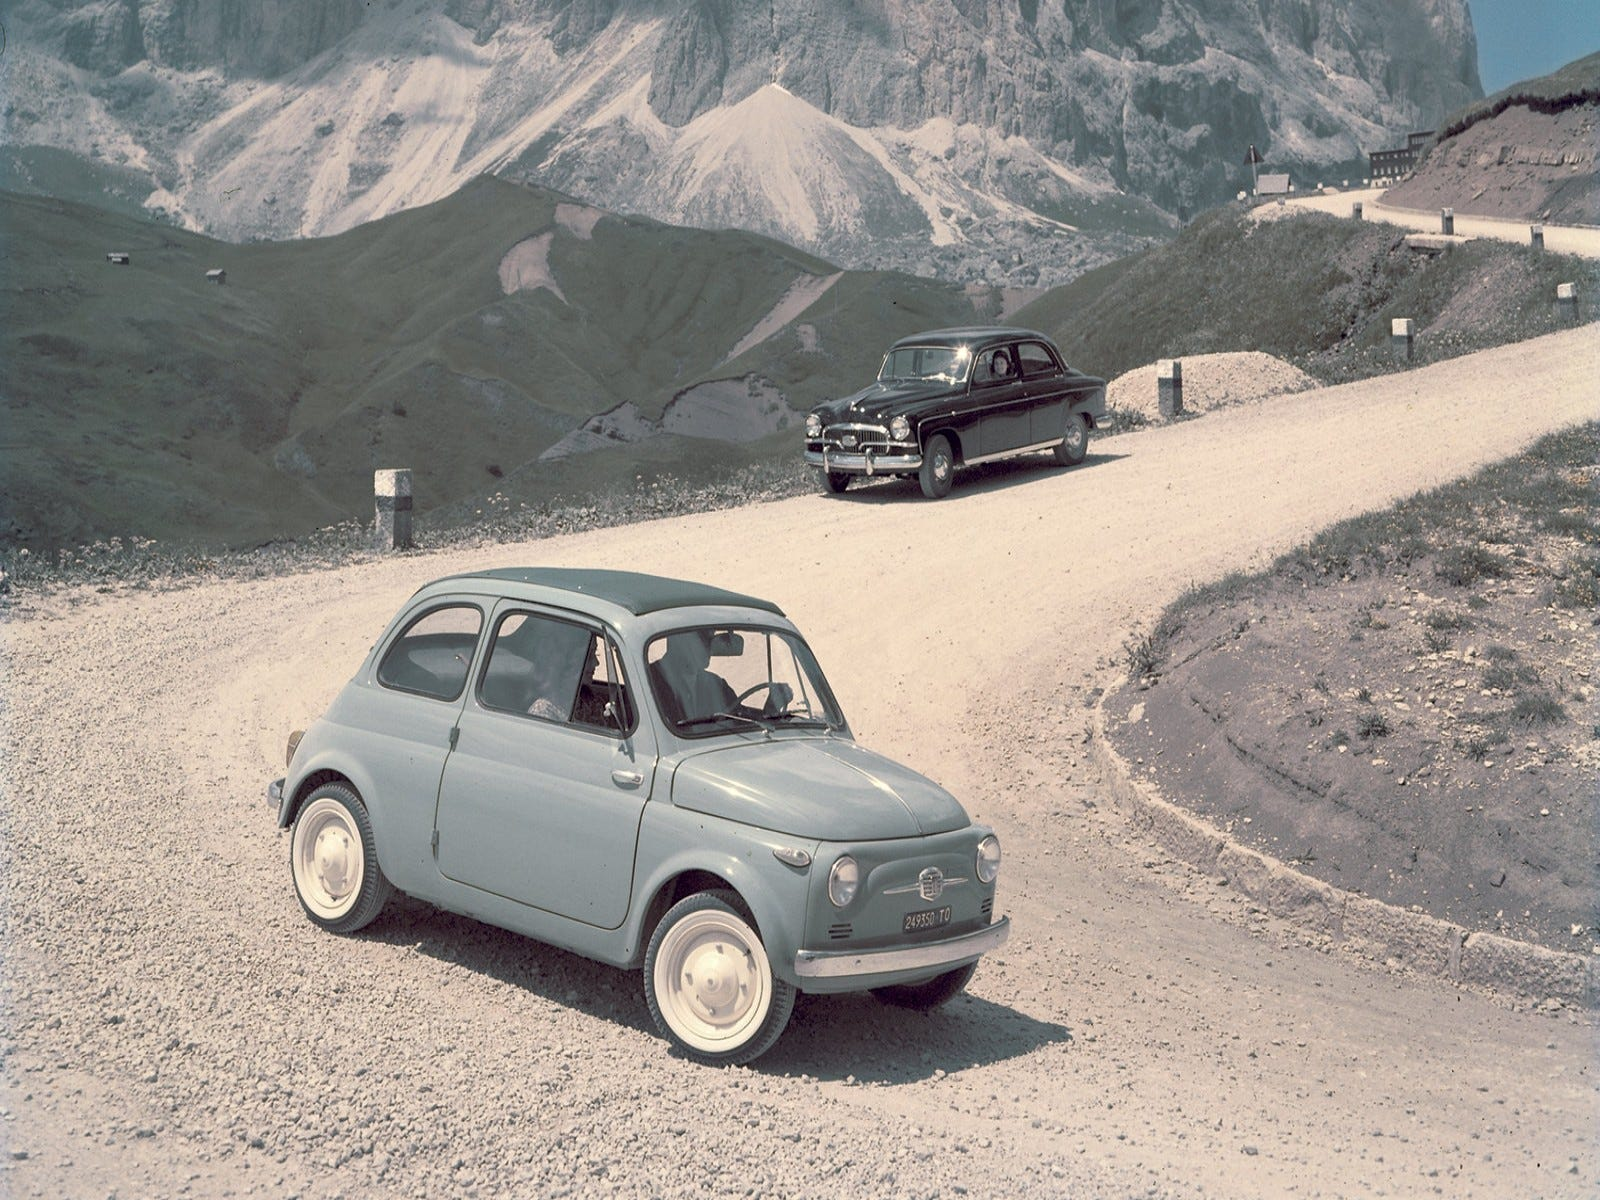 Cruising the mountain roads of Italy - the suicide doors, fender-mounted turn signals and front vents are easily visible on this early Nuova 500.